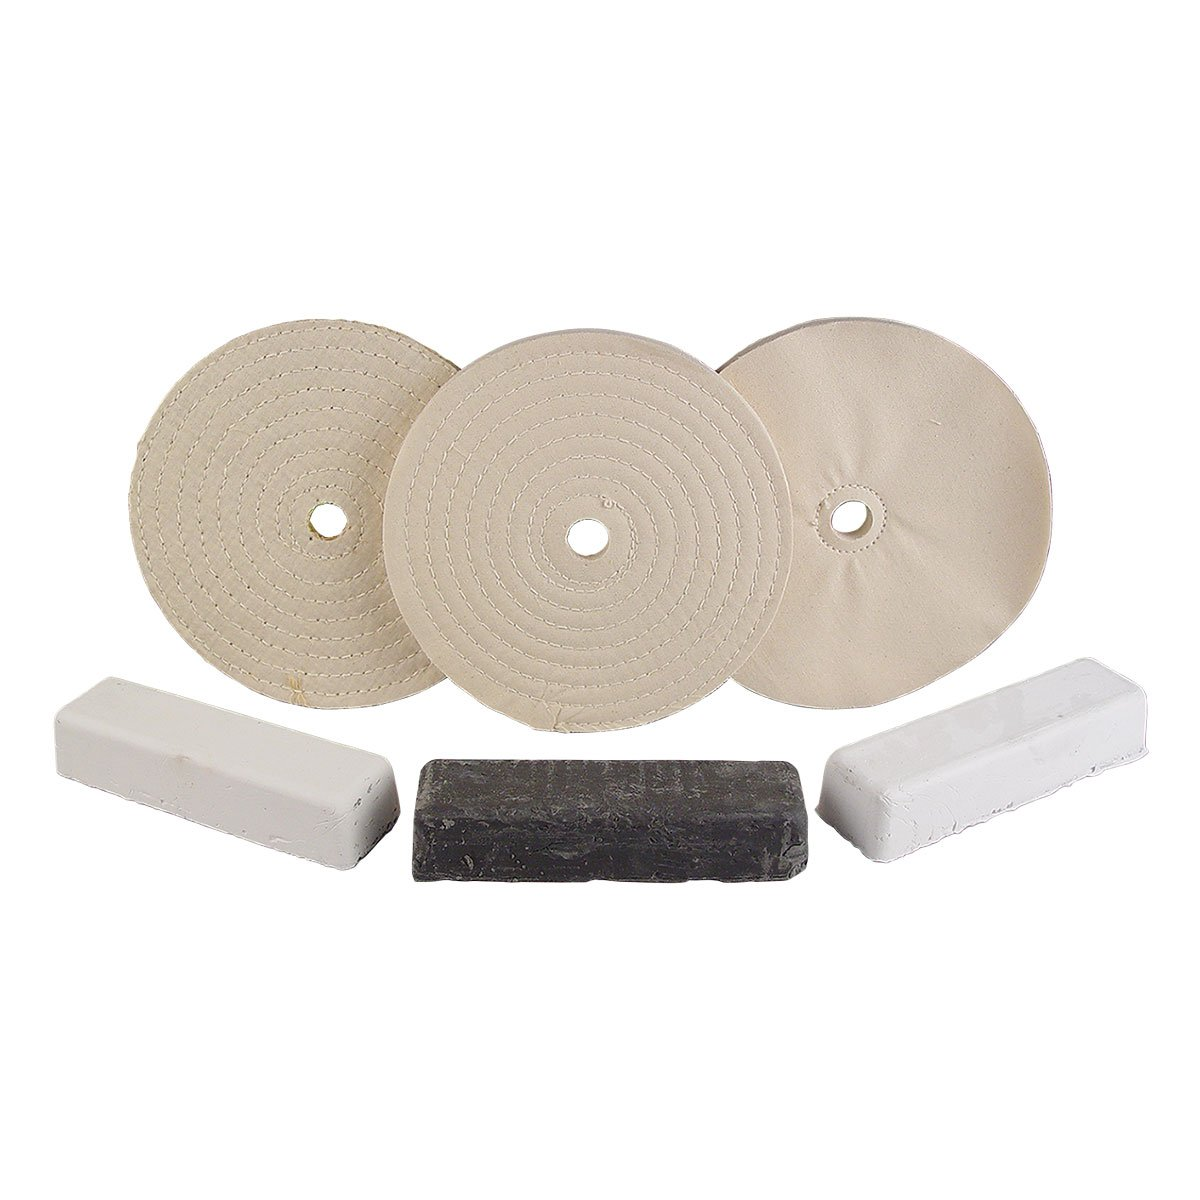 8'' Stainless Buffing Set 8455-136, Fits 3/4''-7/8'' Arbor Hole, Made in USA by TP Tools